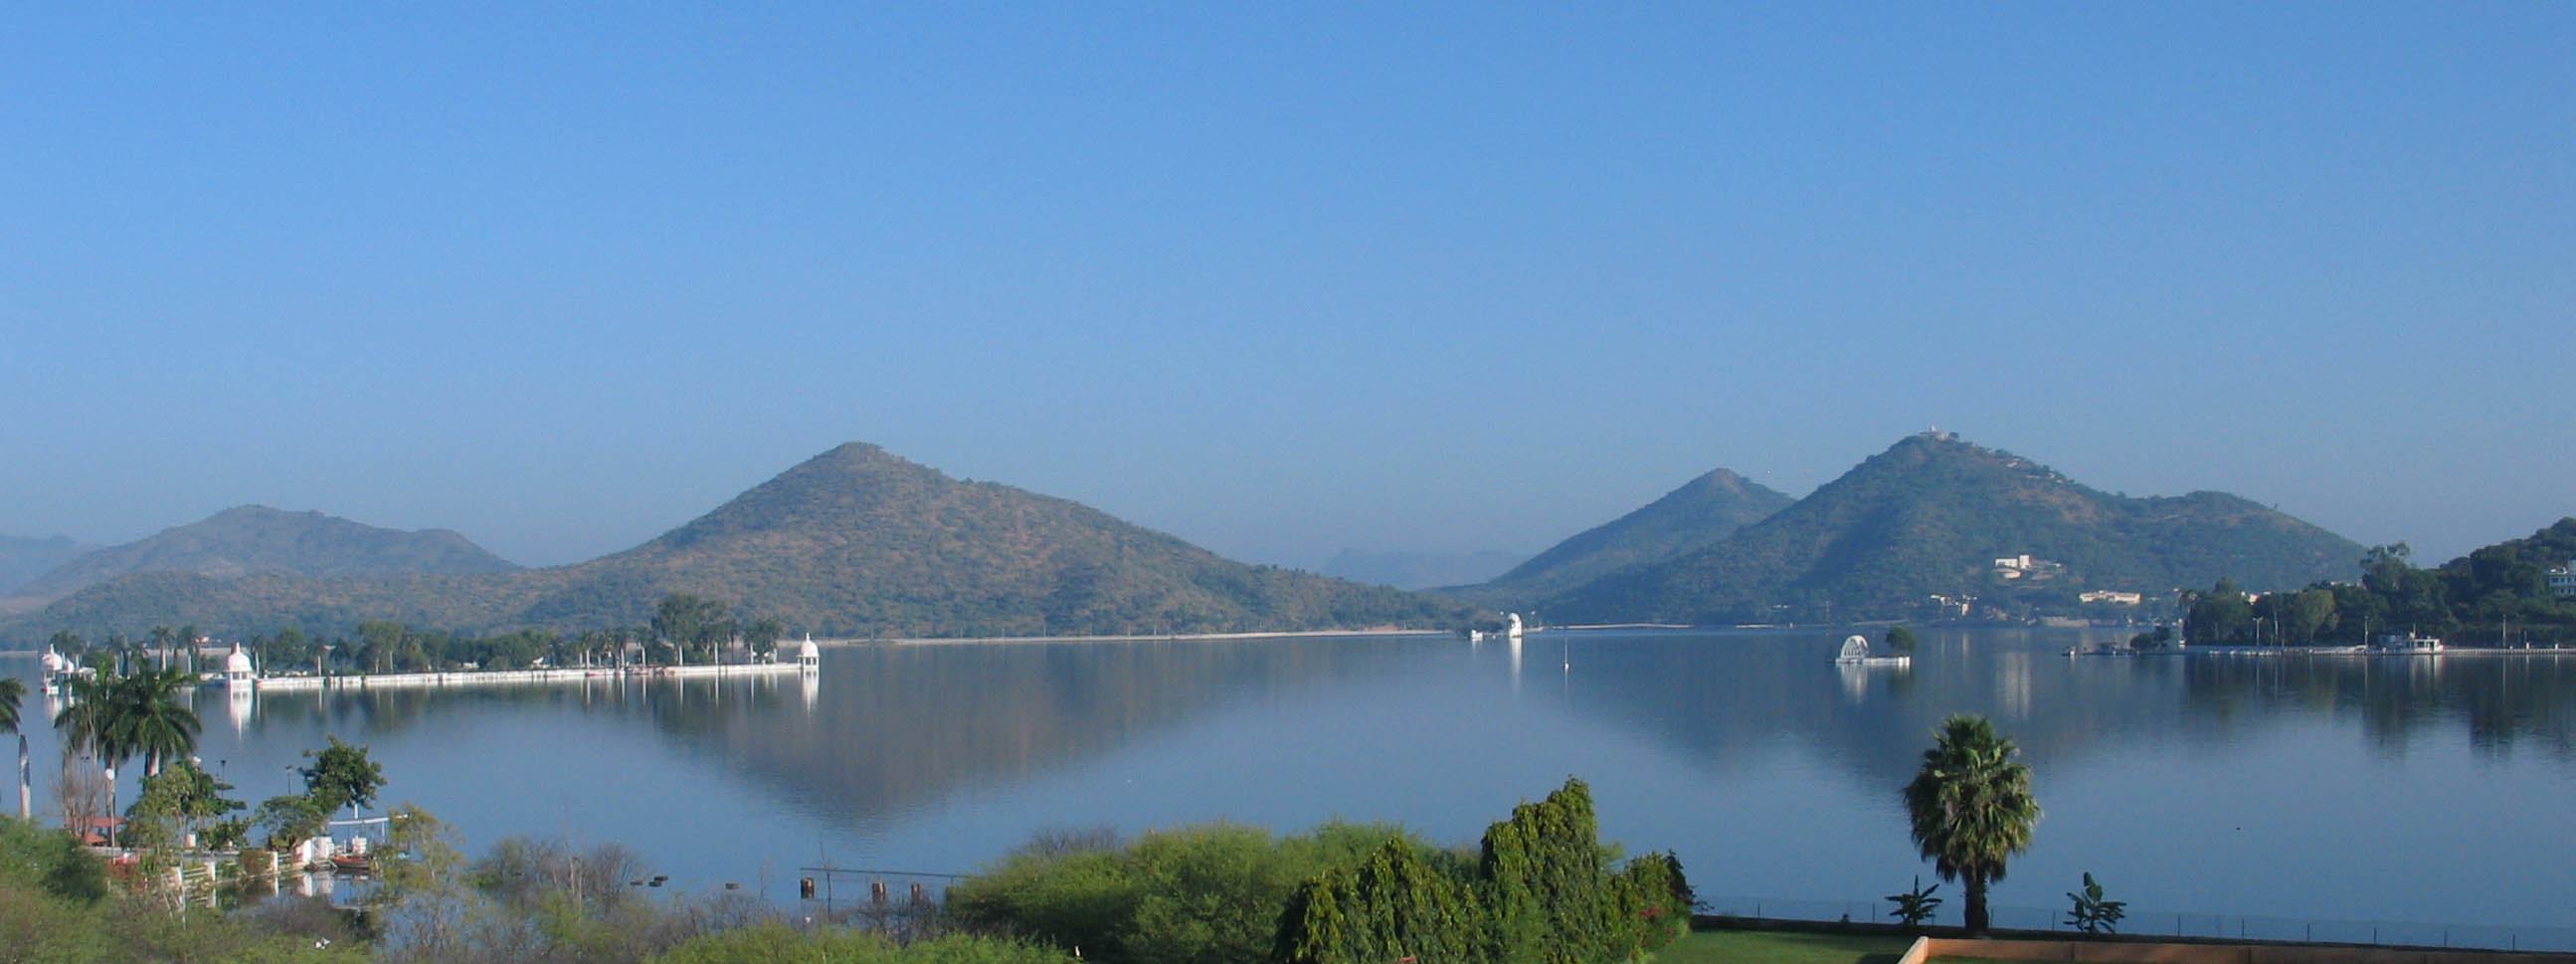 Udaipur City Of Lakes Places Of Attraction